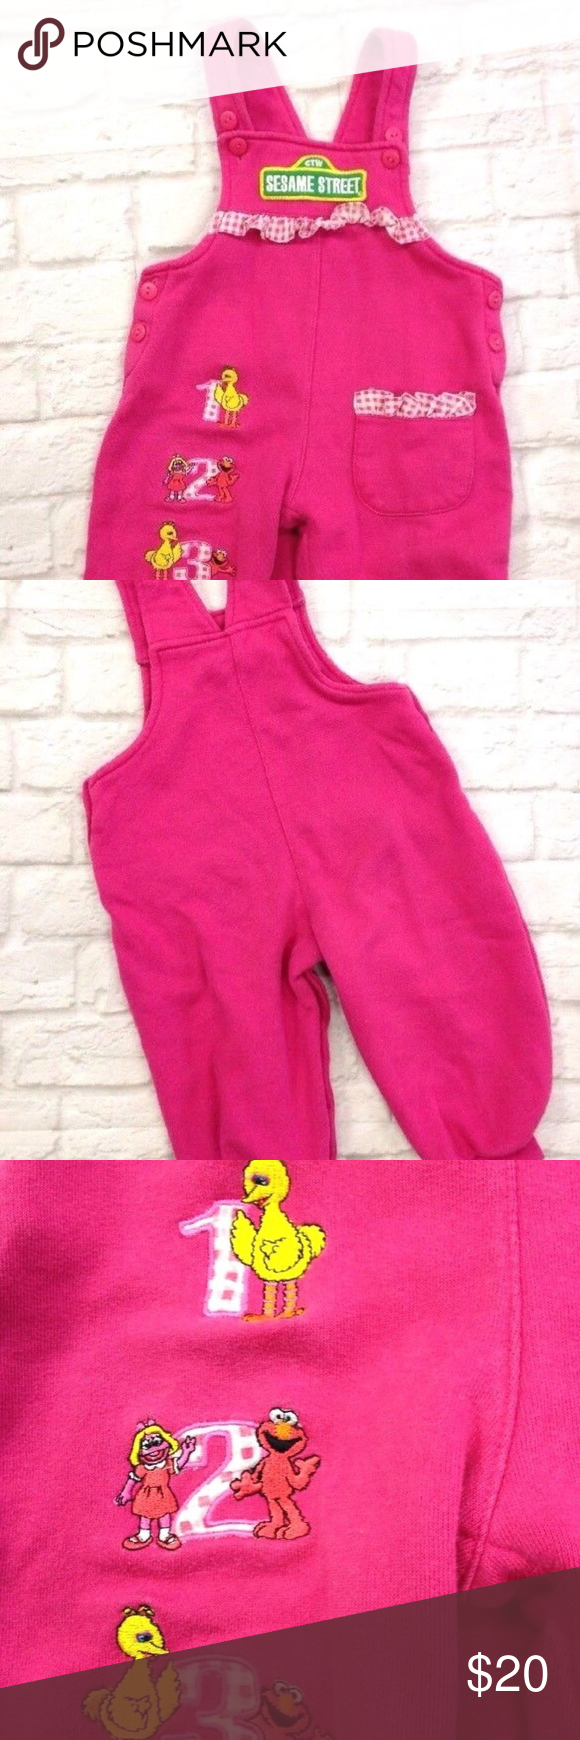 Pink Ruffle Overalls